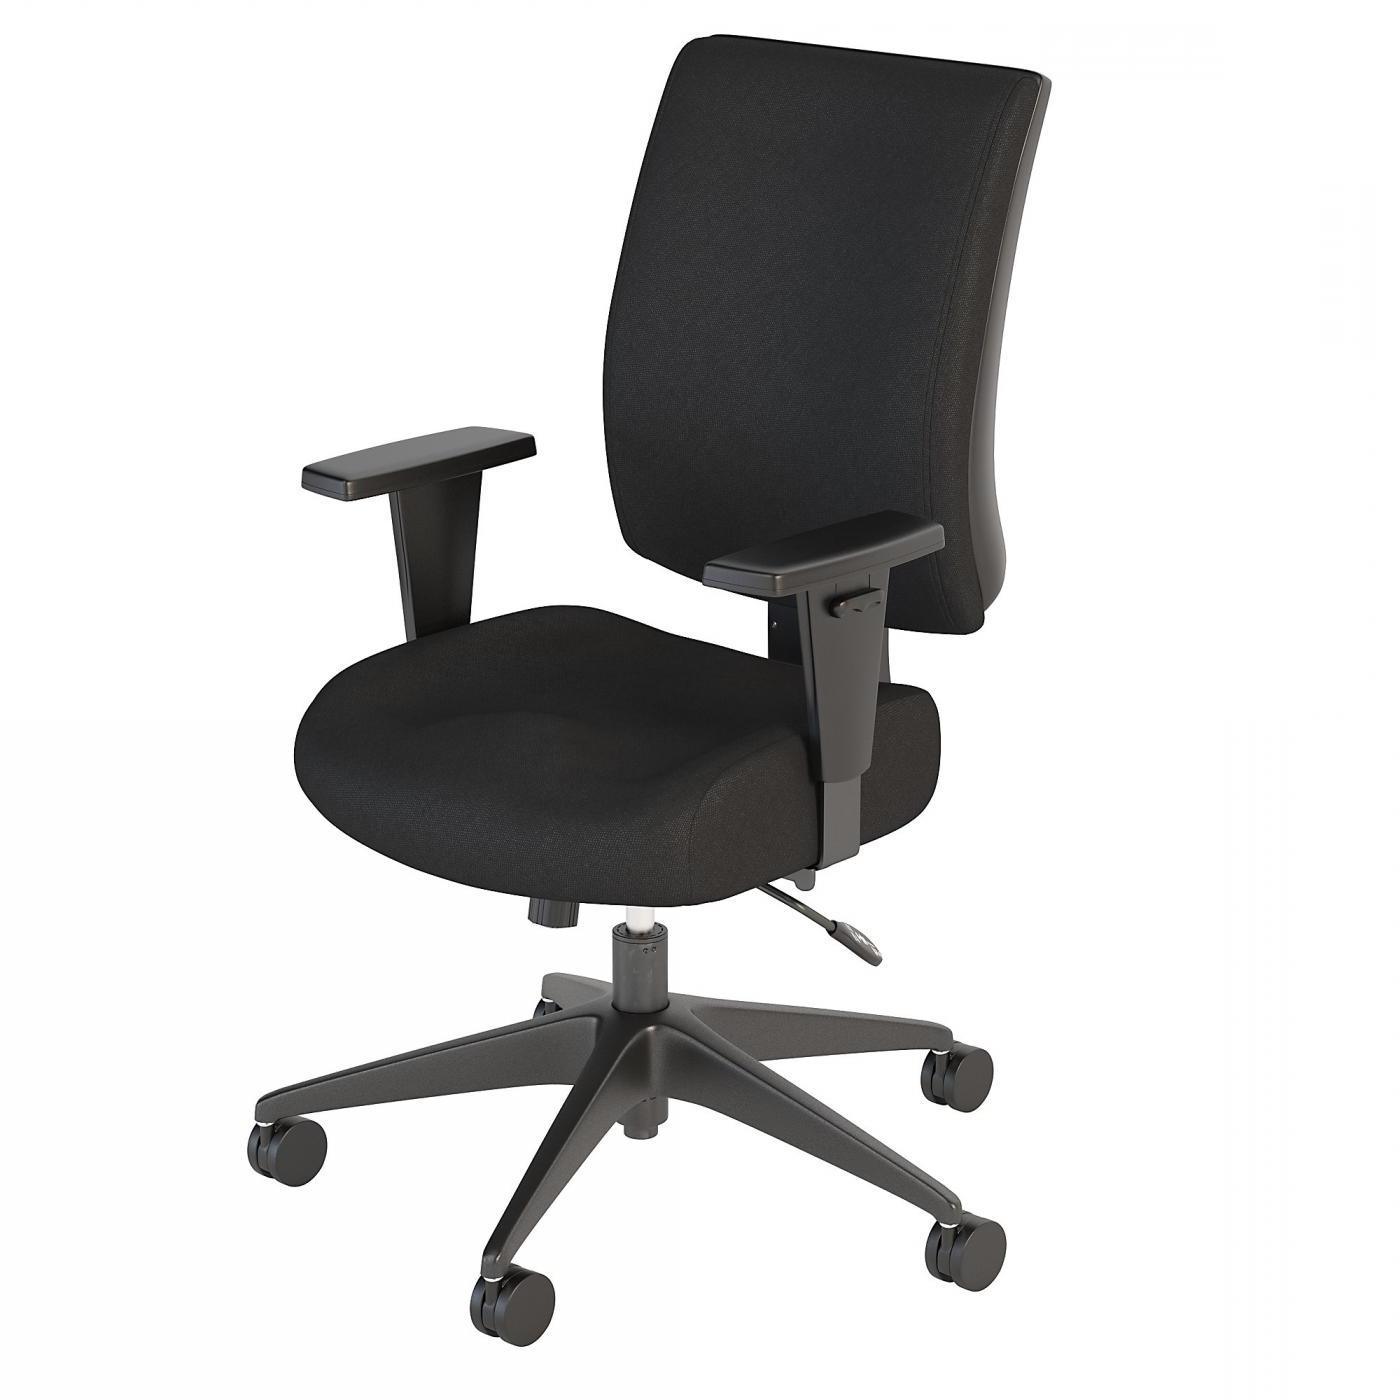 BUSH BUSINESS FURNITURE ACCORD MID BACK MULTIFUNCTION OFFICE CHAIR. FREE SHIPPING.